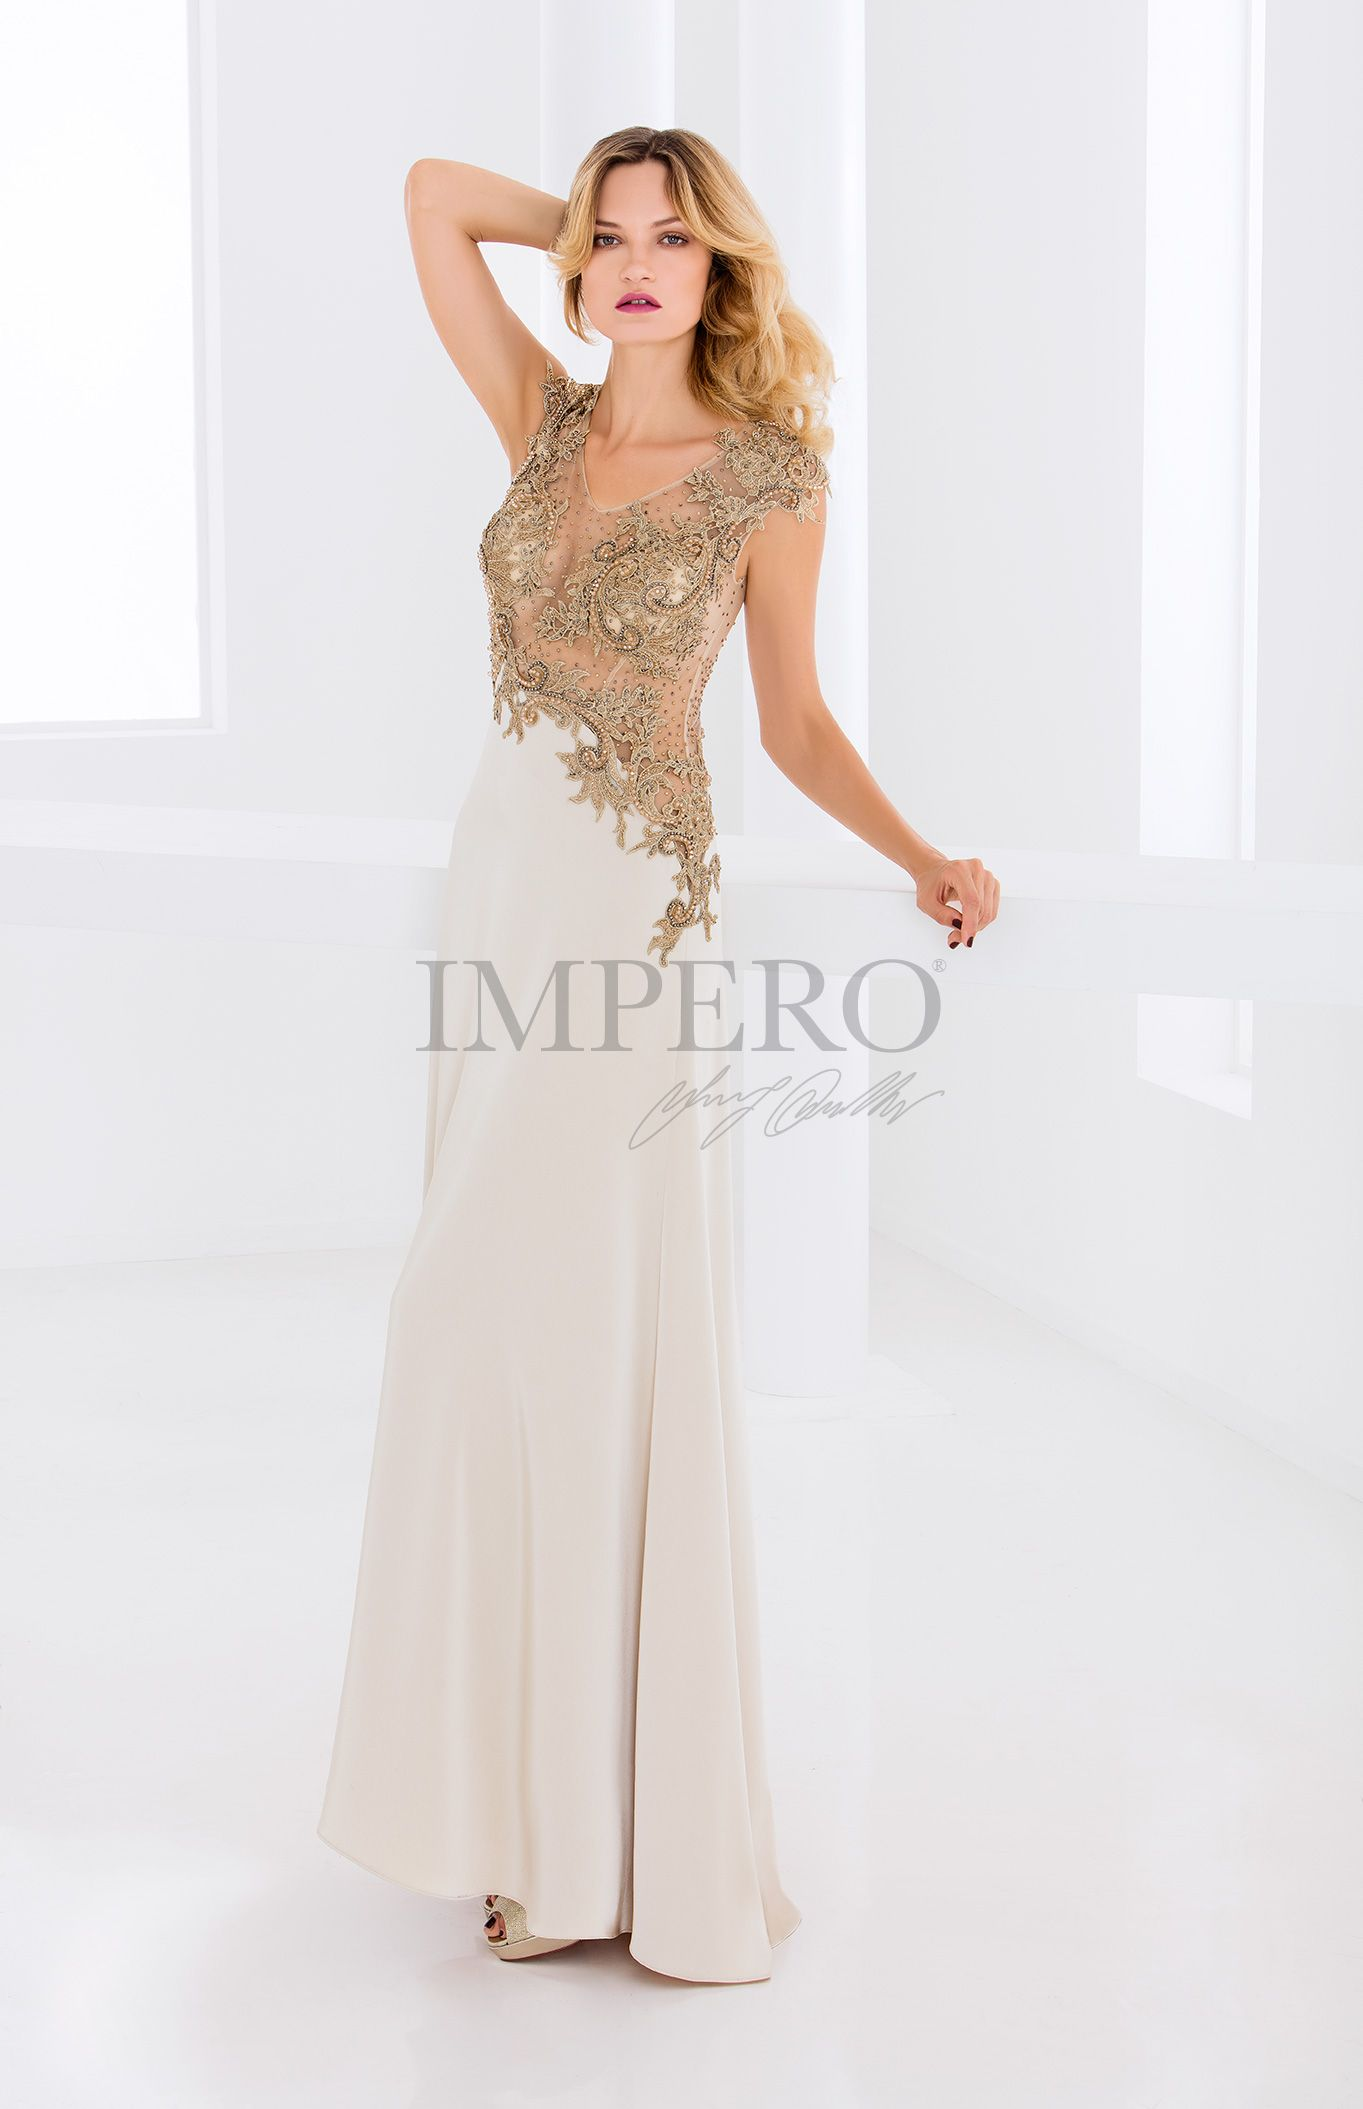 72a3137c44ea MS 150120  abiti  dress  wedding  matrimonio  cerimonia  party  event   damigelle  bianco  white  oro  gold